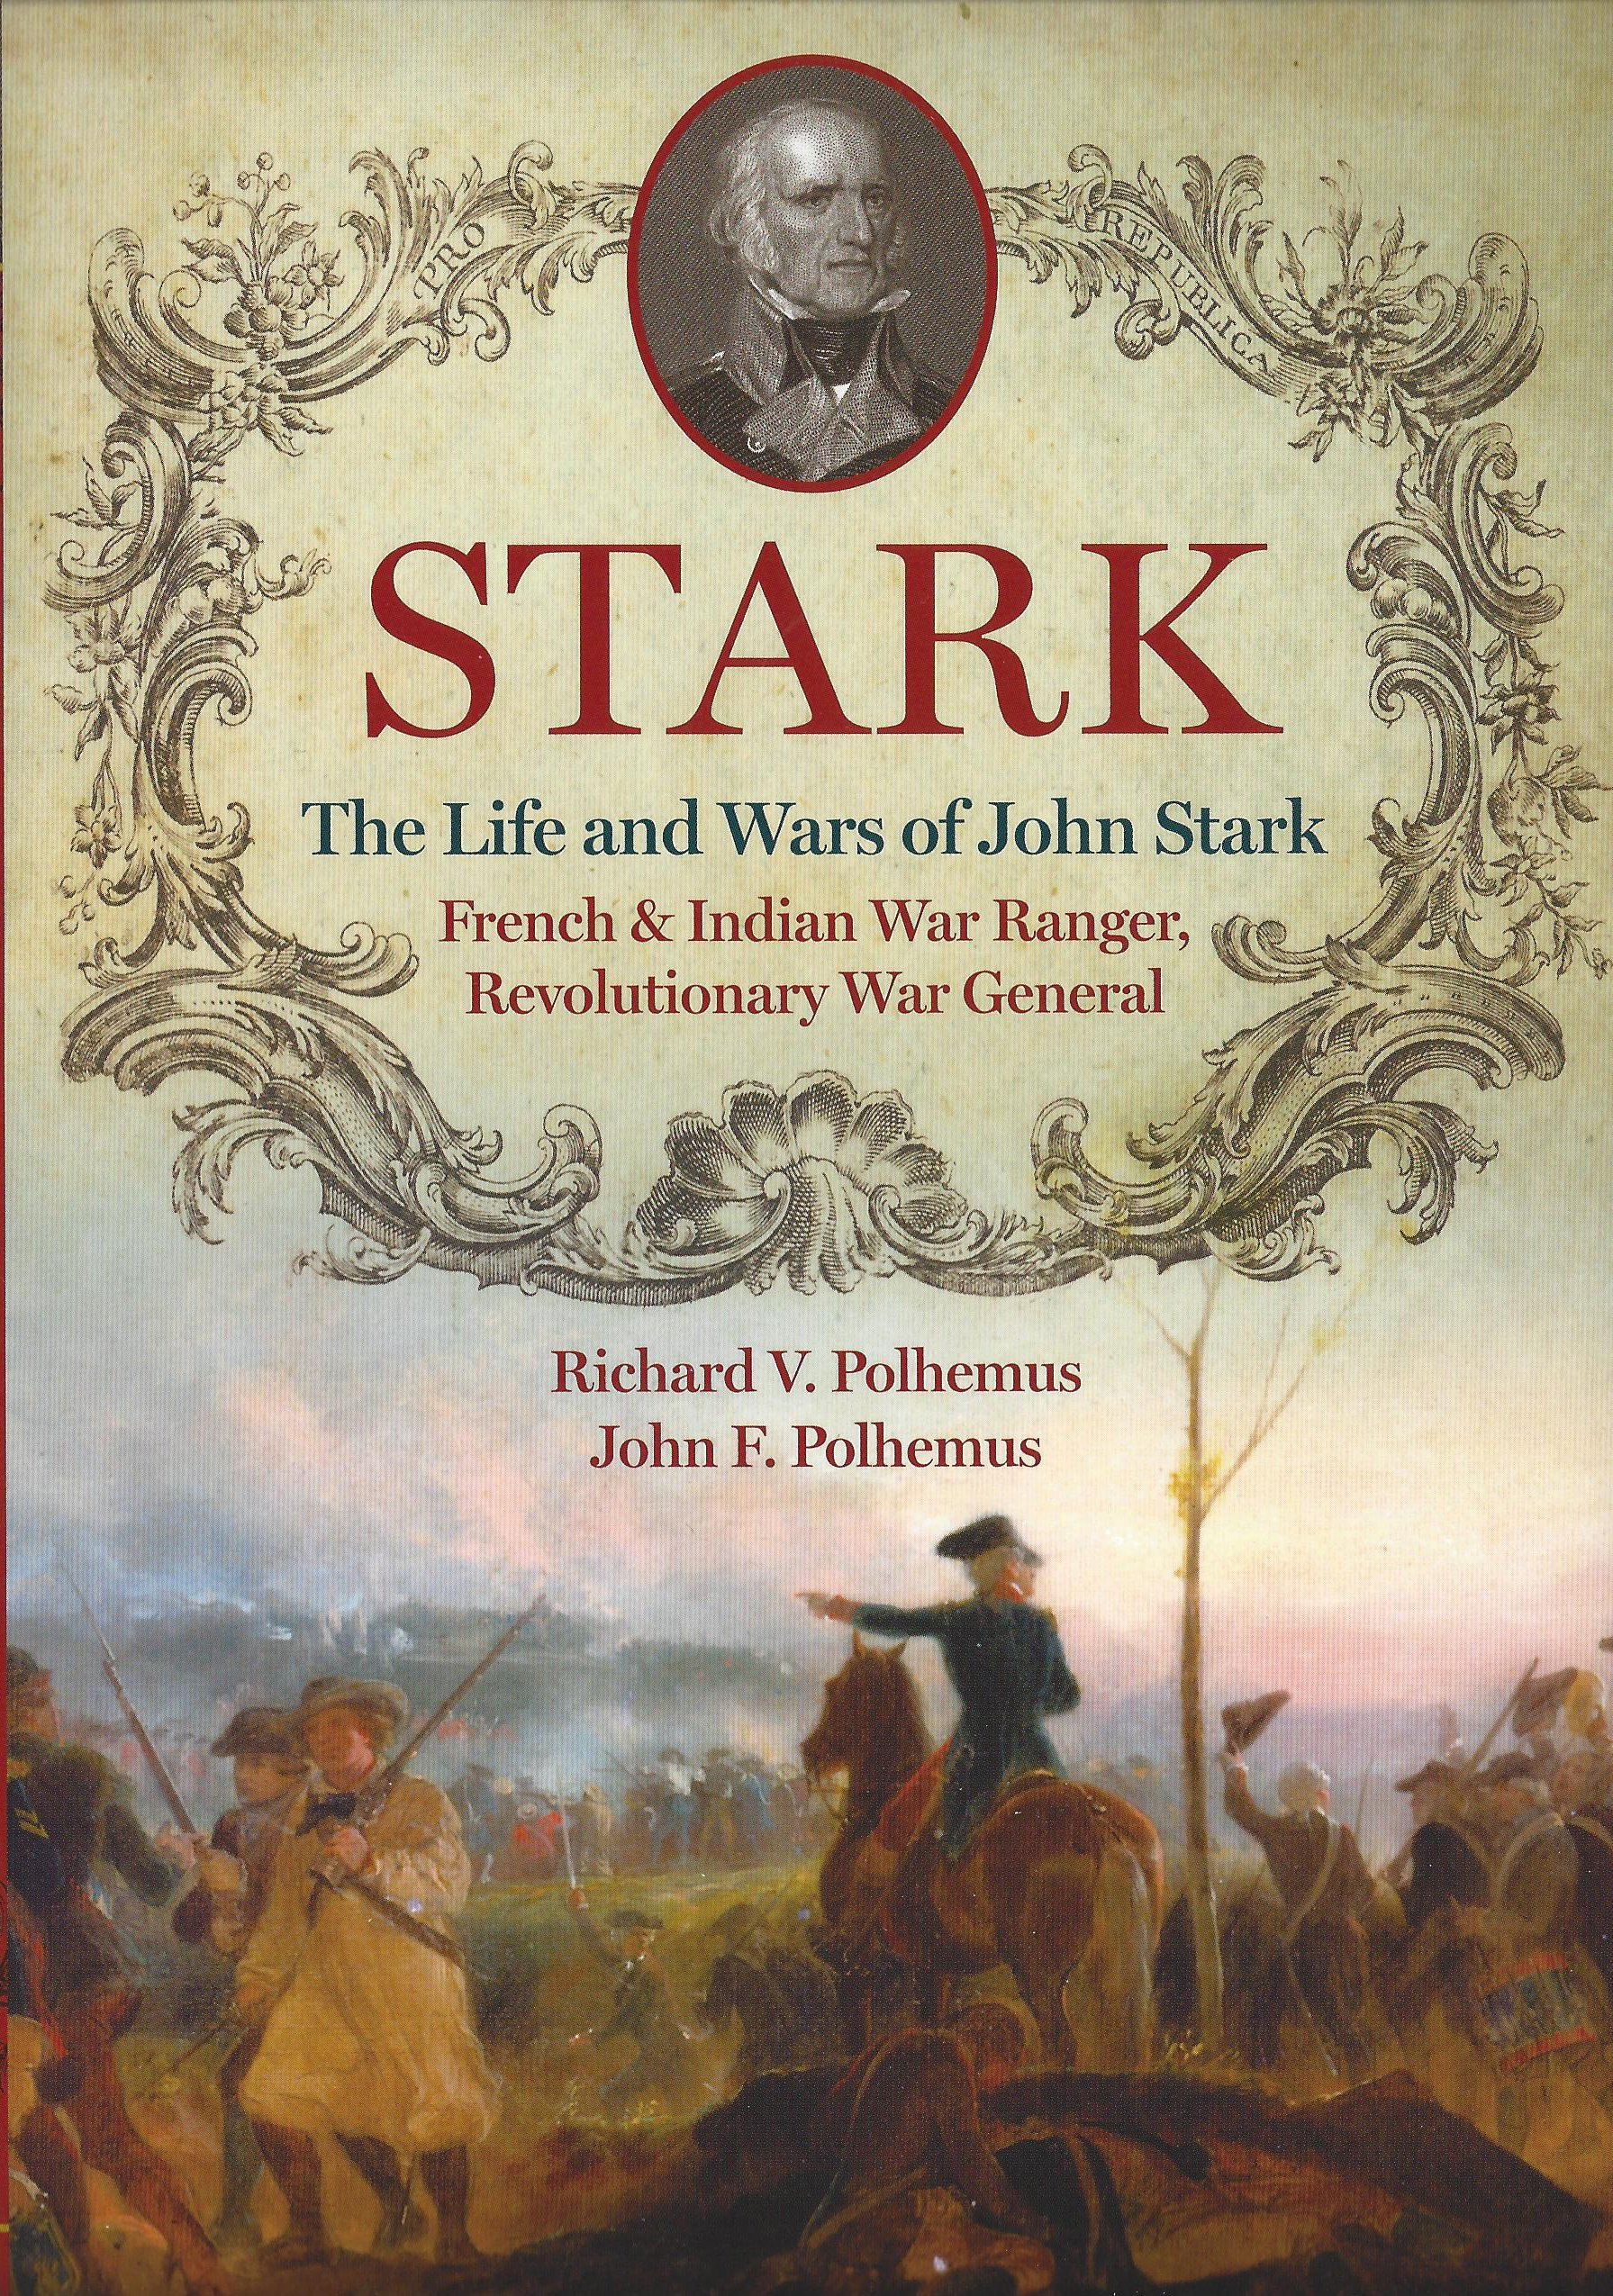 For a many years, the hotel was named after John Stark. To learn more about this Revolutionary War general, click the link below to acquire this book.